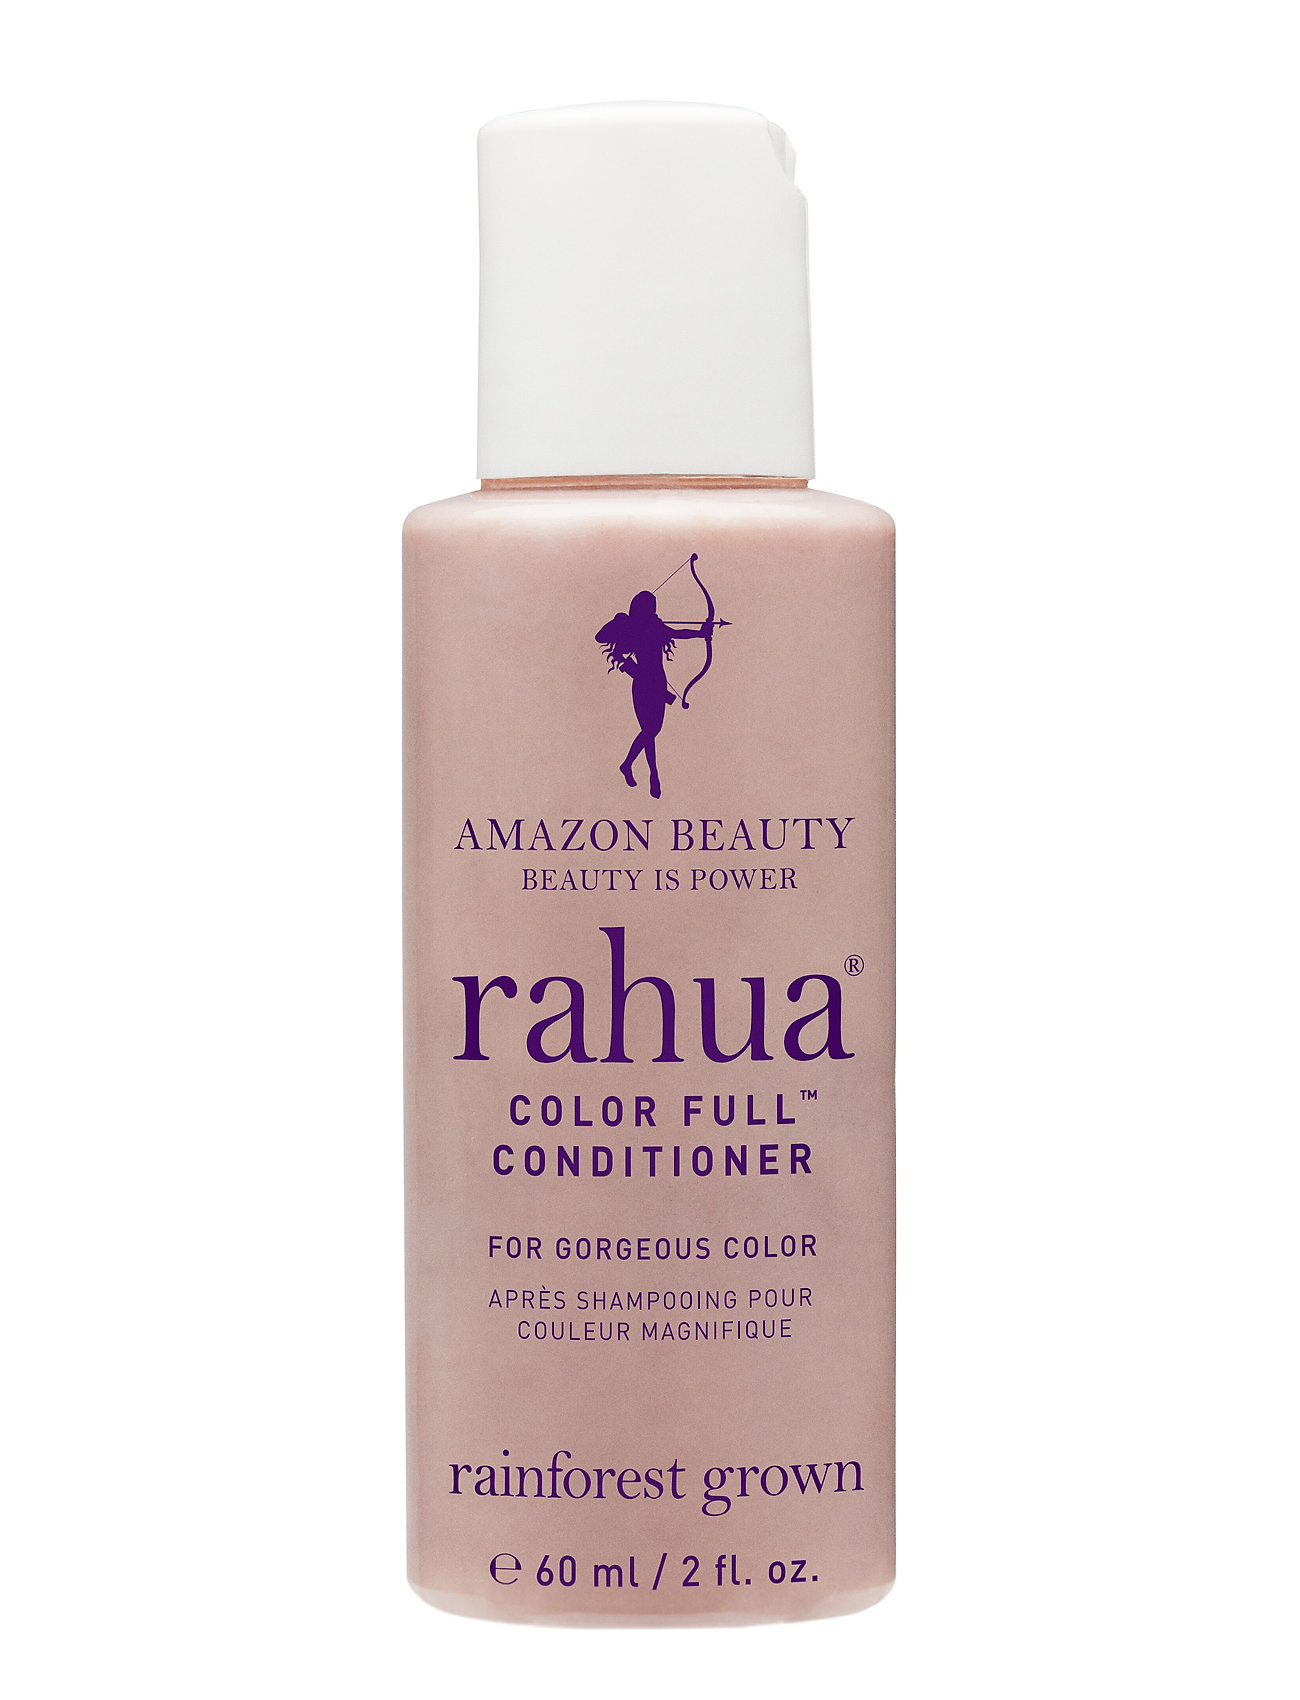 Rahua Rahua Color Full™ Conditioner Travel Size - CLEAR